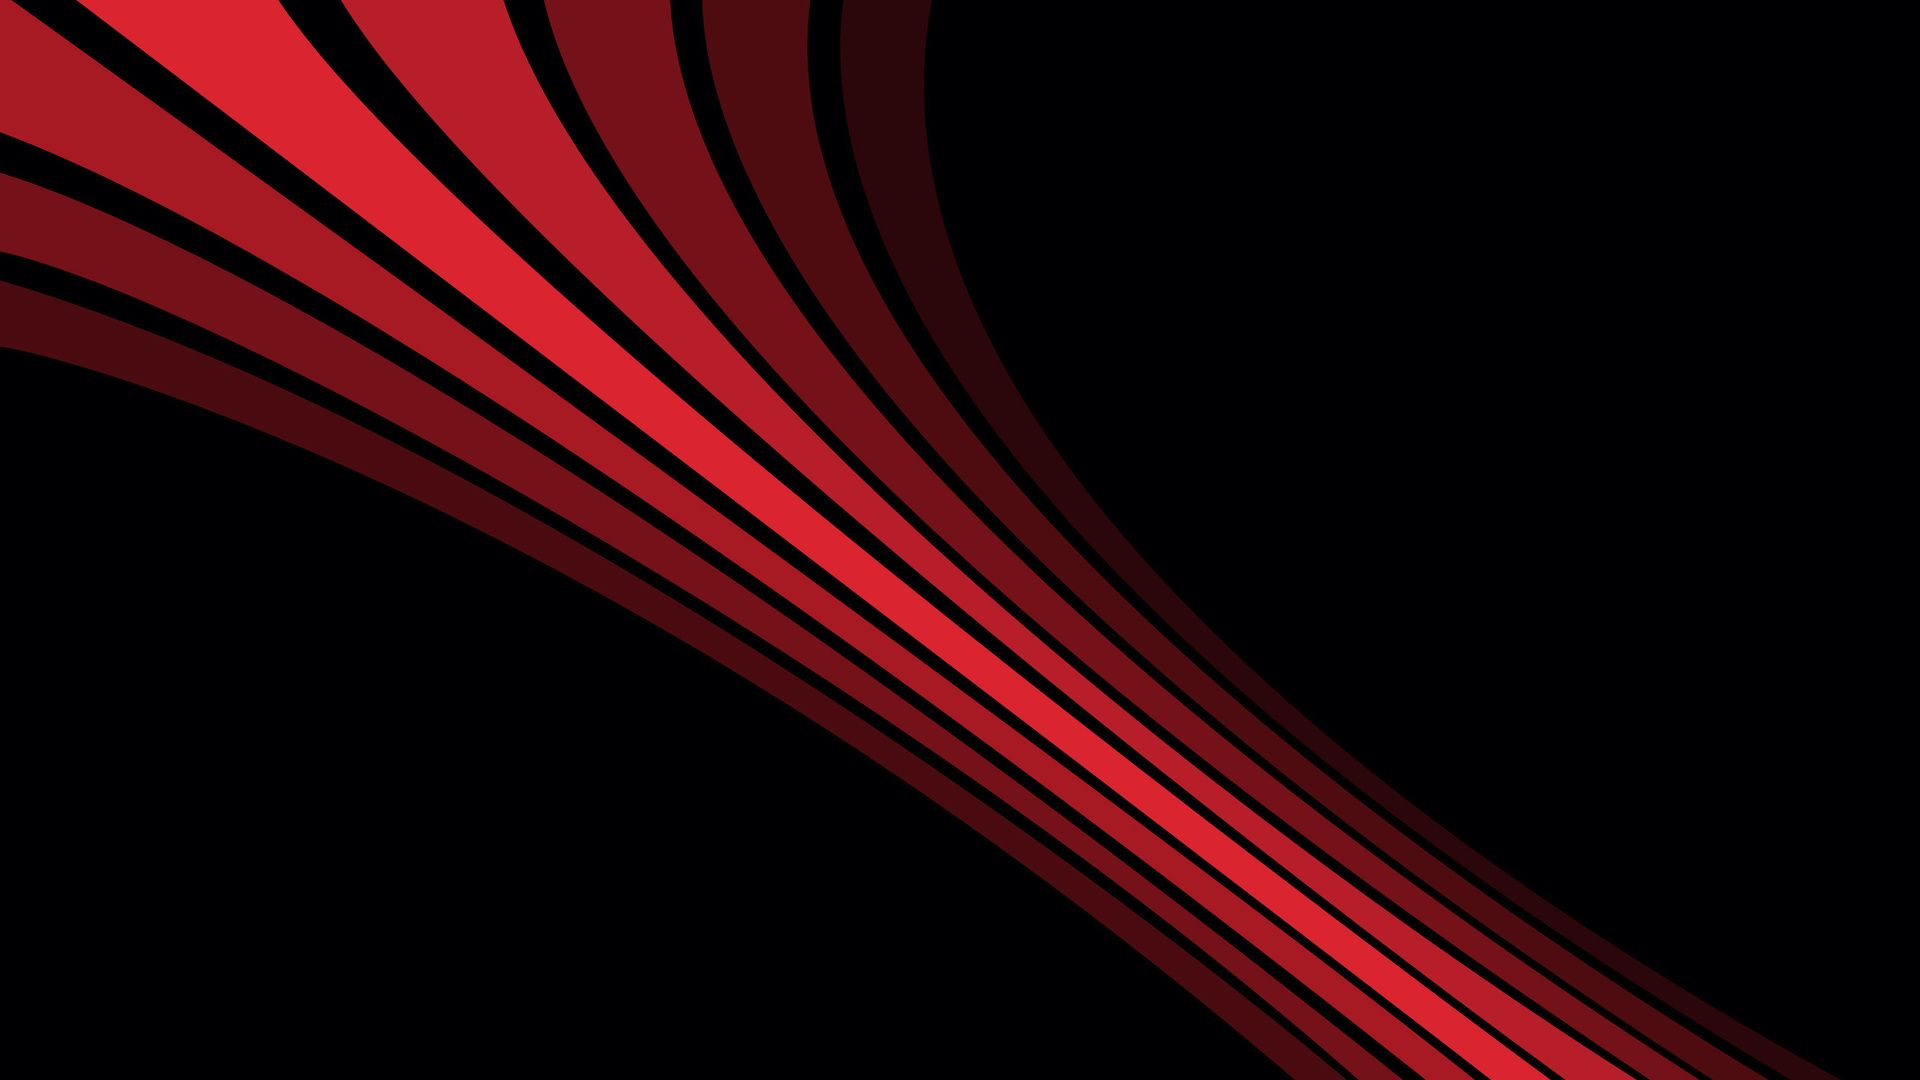 Hd wallpaper red and black - Hd Wallpaper Black Red